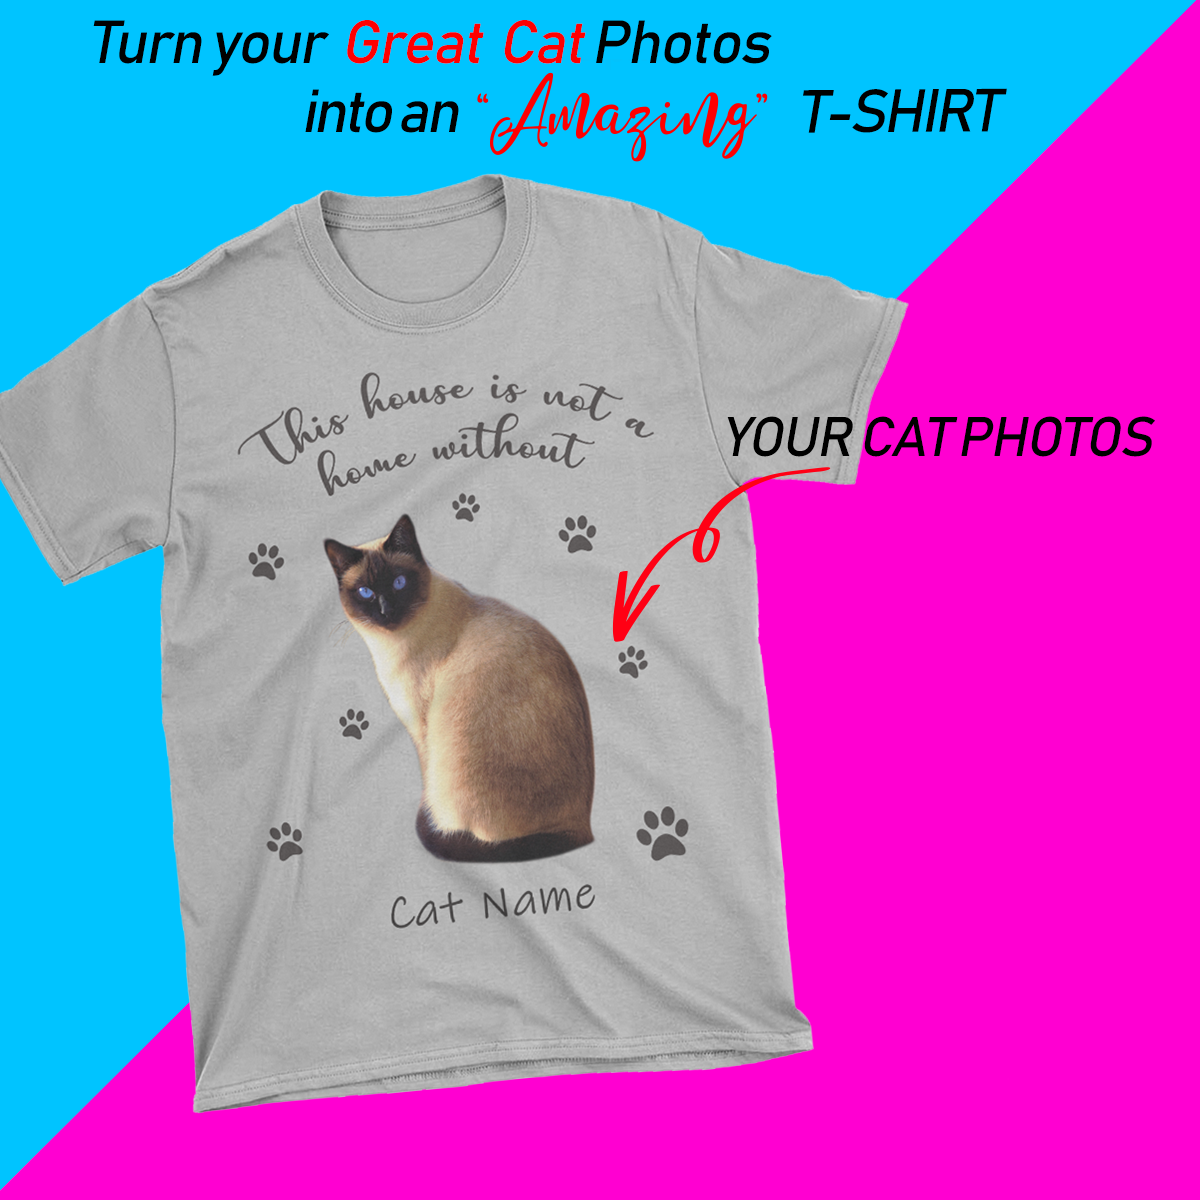 PERSONALIZED T-SHIRT - UPLOAD YOUR BELOVED CAT PHOTOS AND NAMES MD22